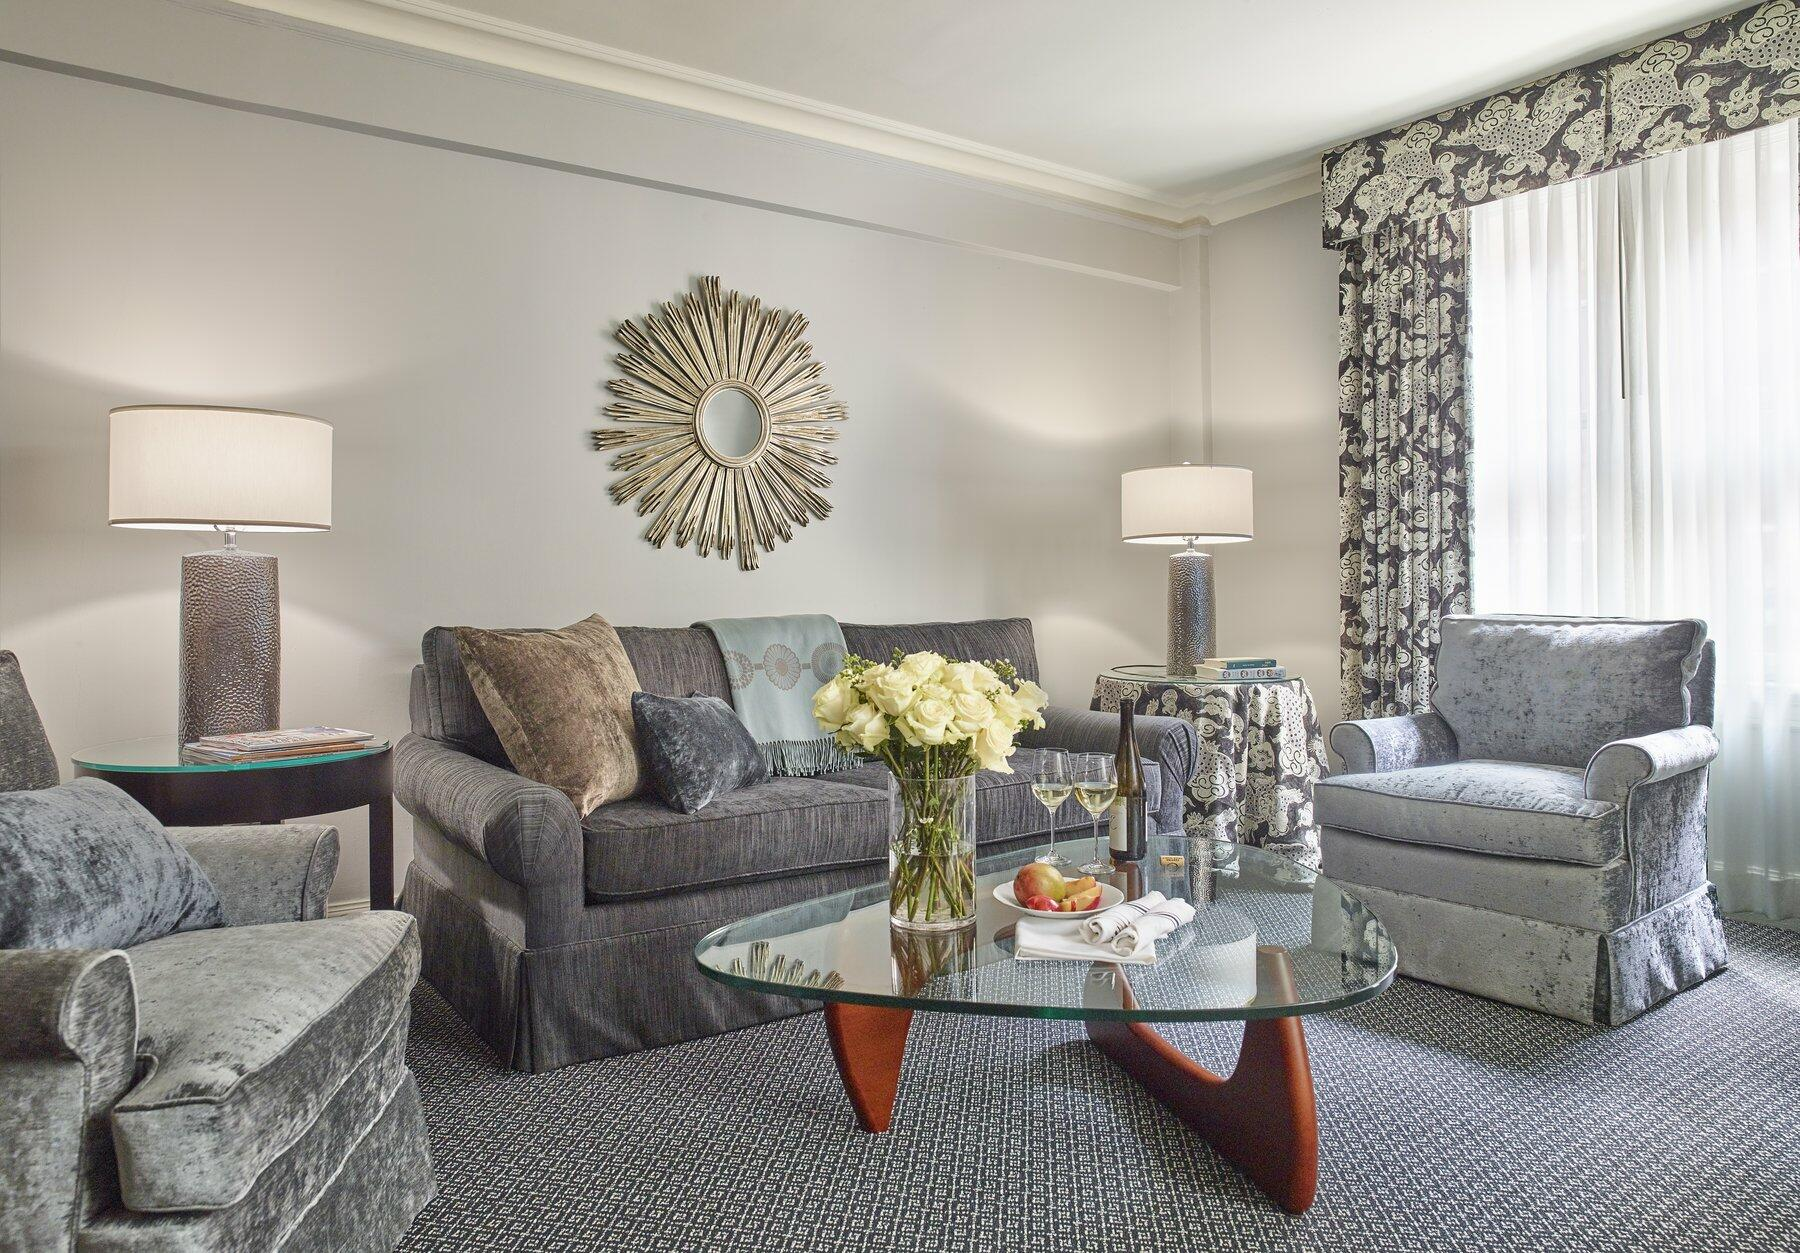 Living room with grey sofa, two chairs and glass coffee table